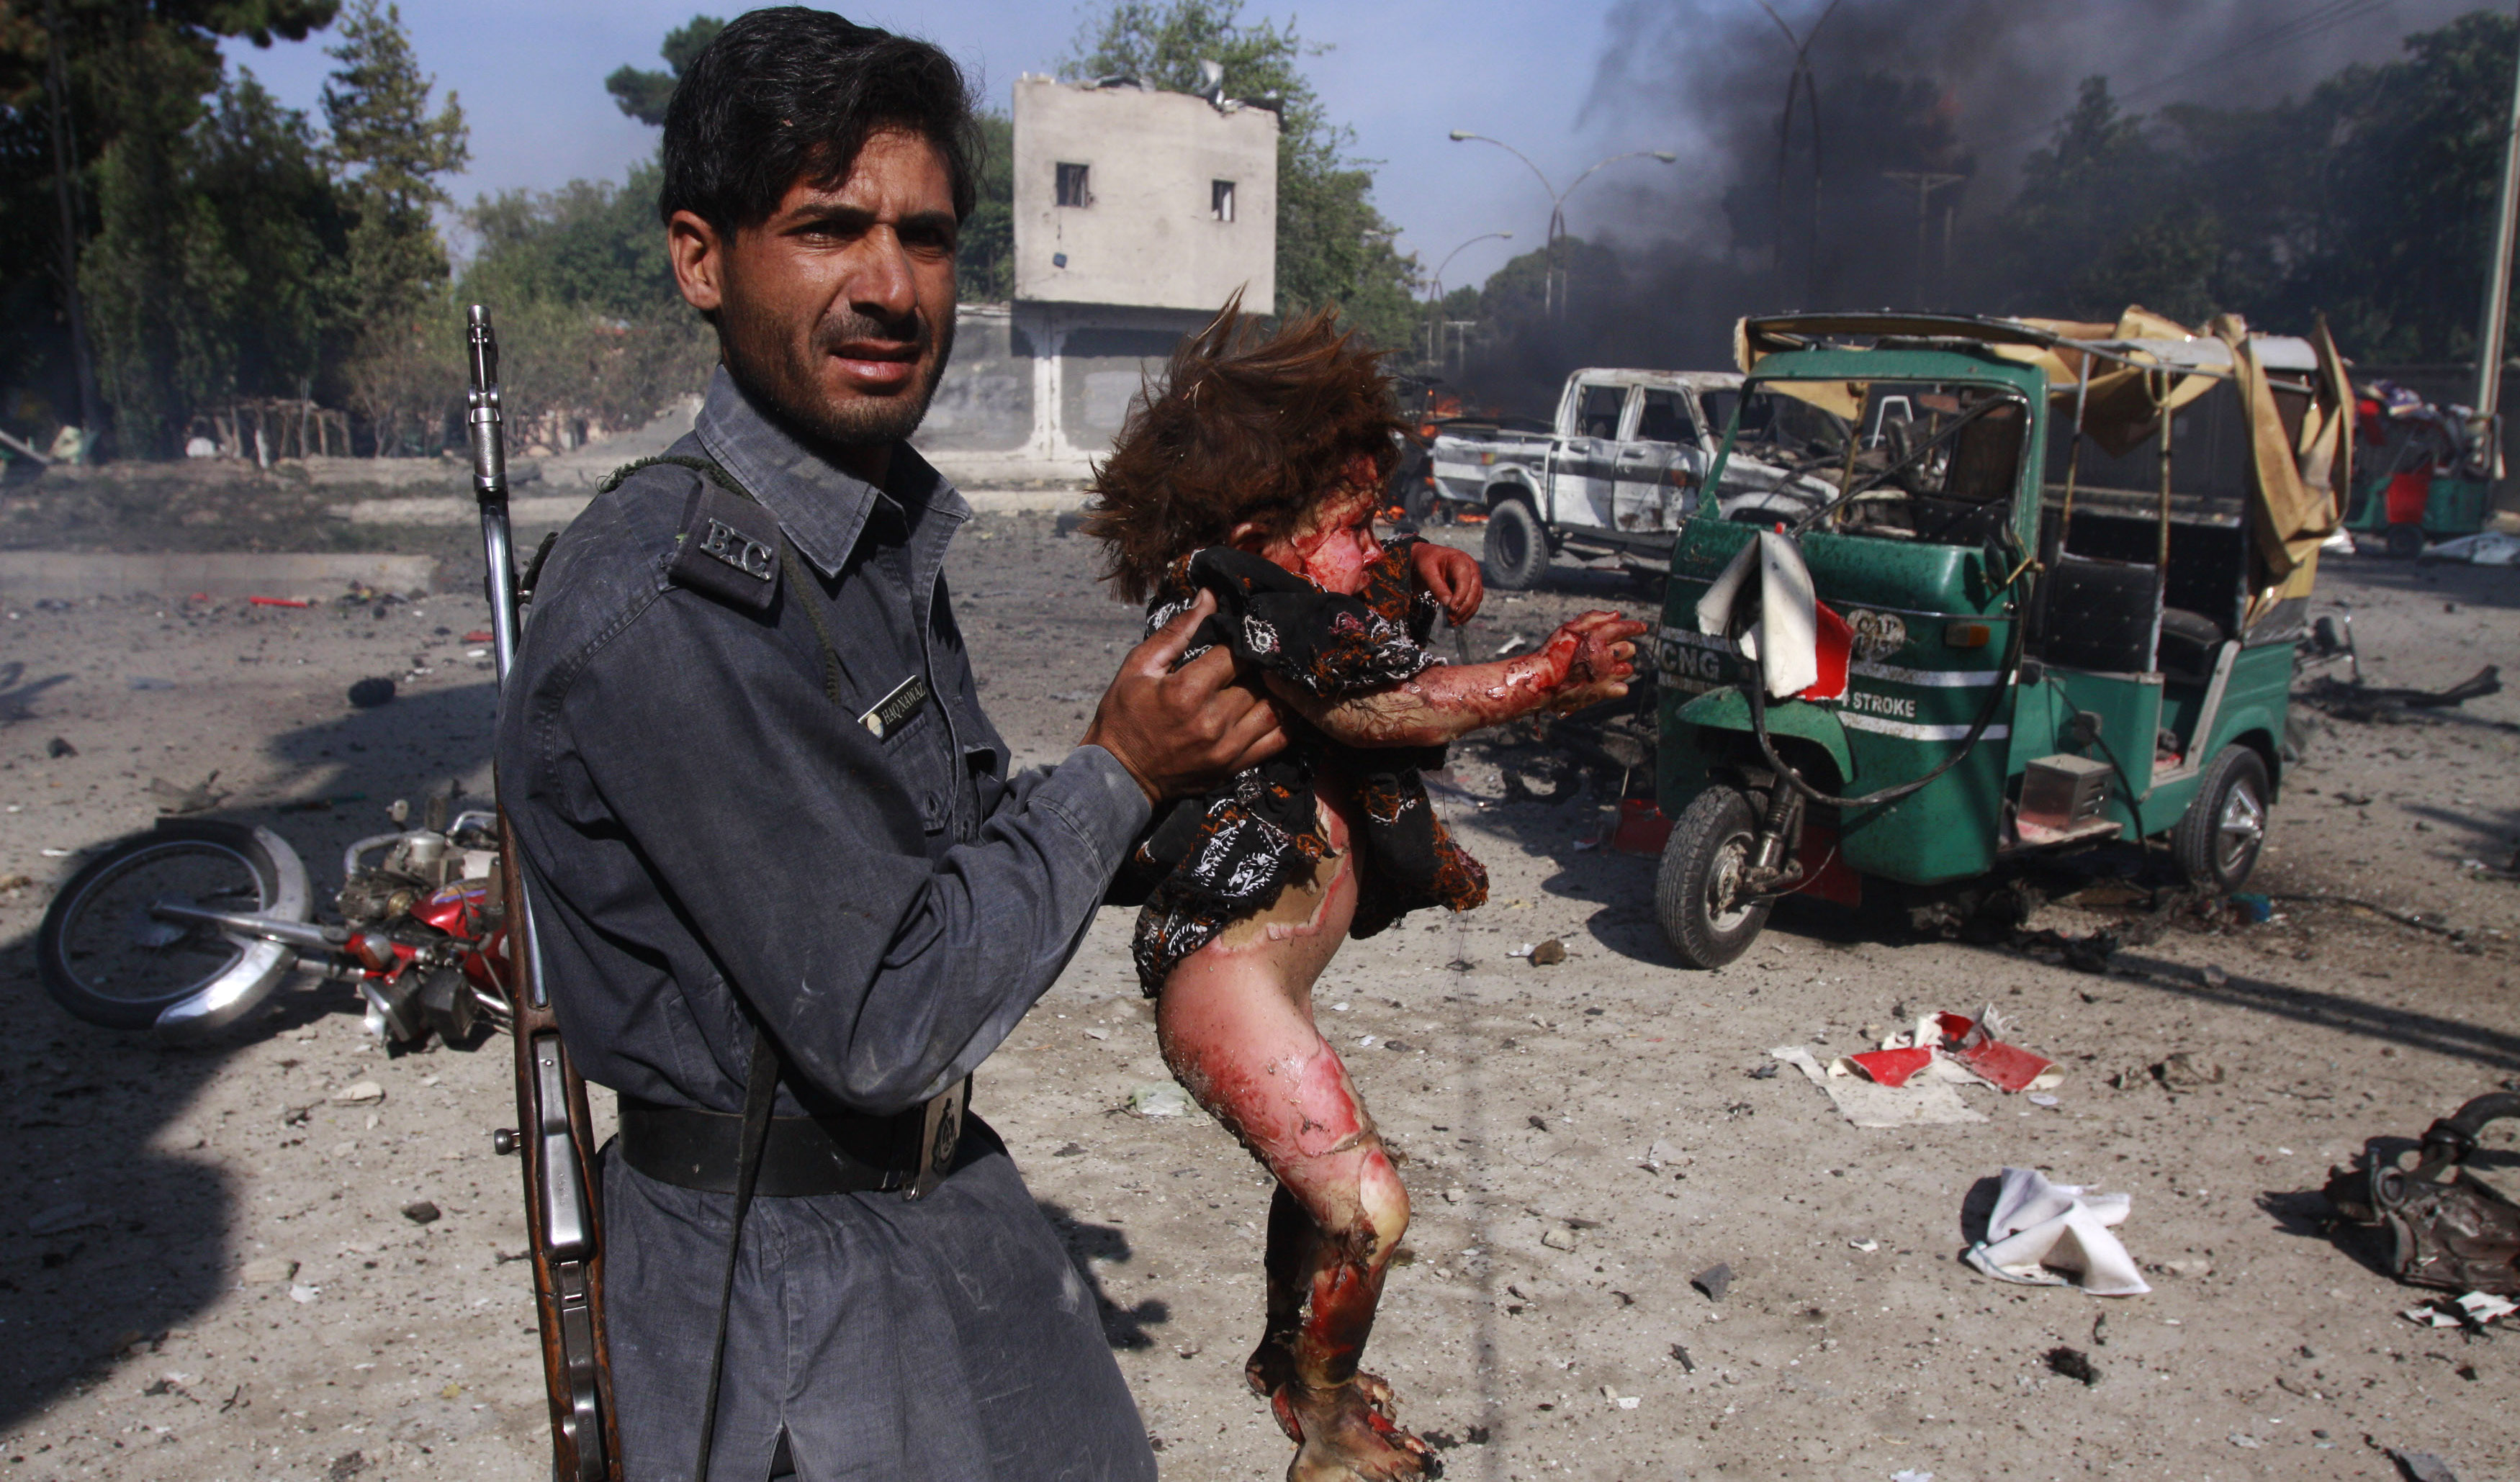 aftermath us drone strikes with 4 on Drones Violate Pakistans Sovereignty moreover Wars Of Insanity likewise Us Arab States Hit Isis As Israel Kills Hamas Child Murderers further Drone Strike Benghazis Ganfouda Kills Six besides 432908582902414669.